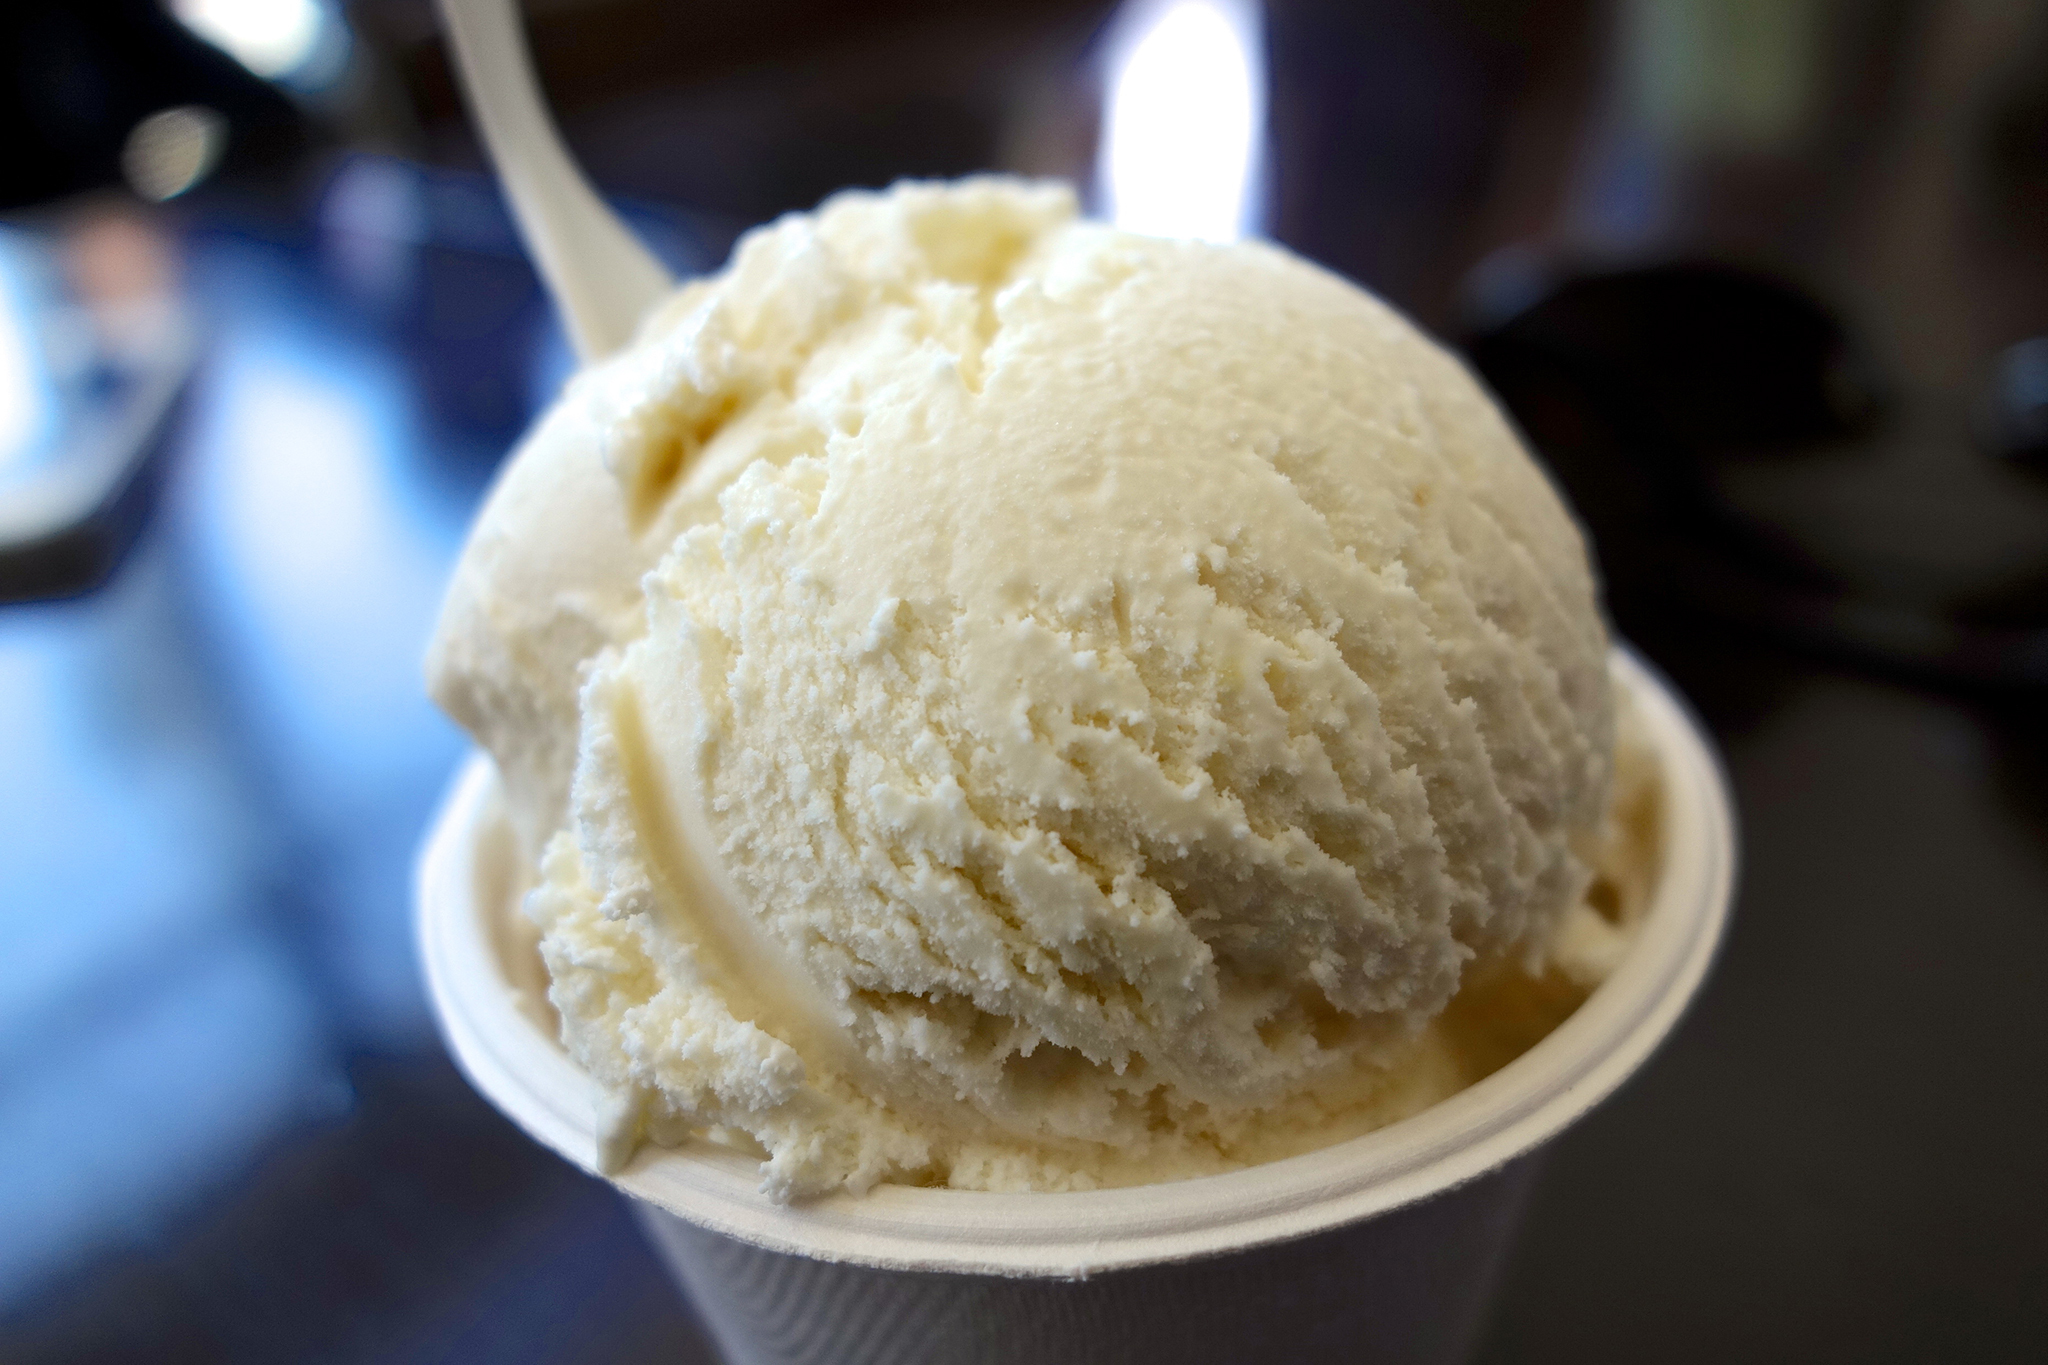 The best ice cream shops in San Francisco